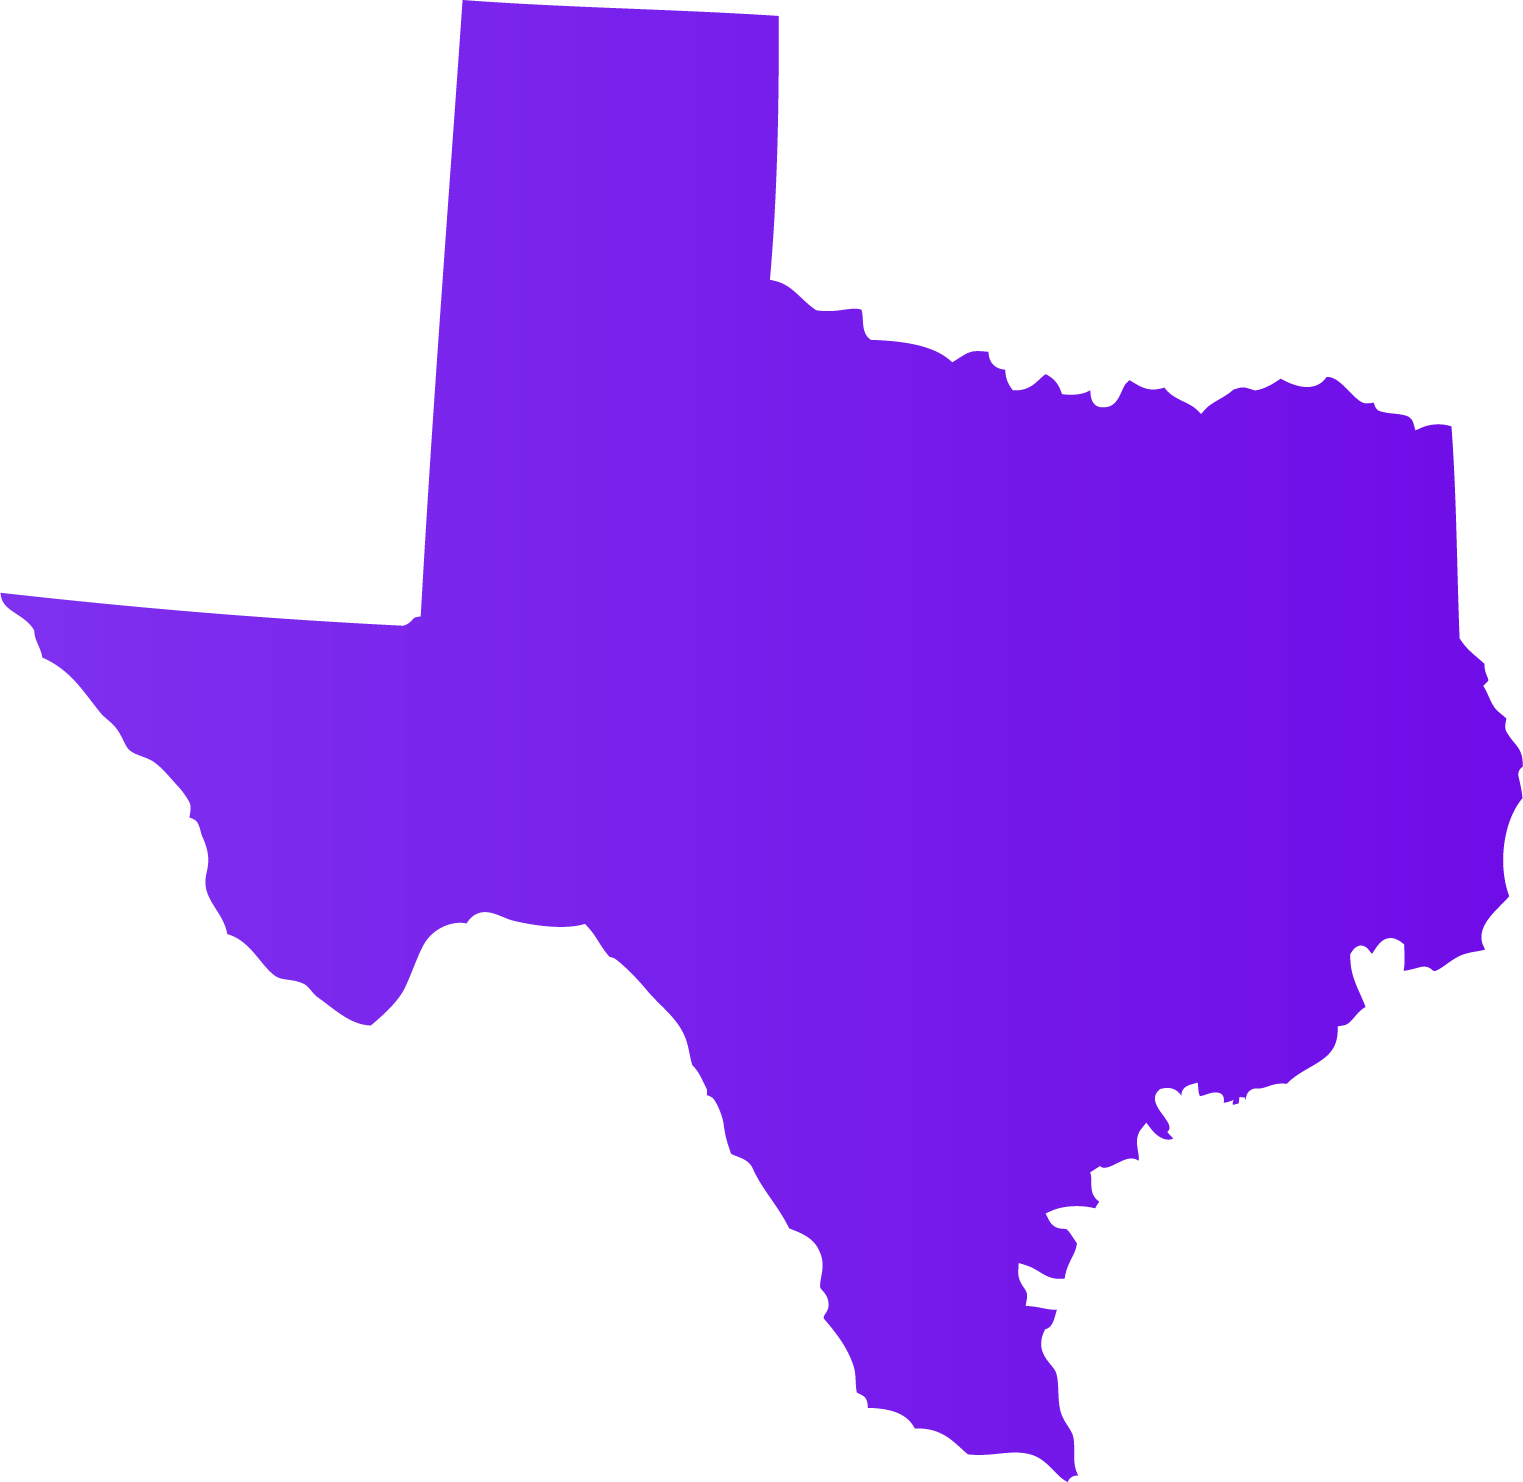 1523x1482 Free State Of Texas Clip Art Clipart Image 5 2